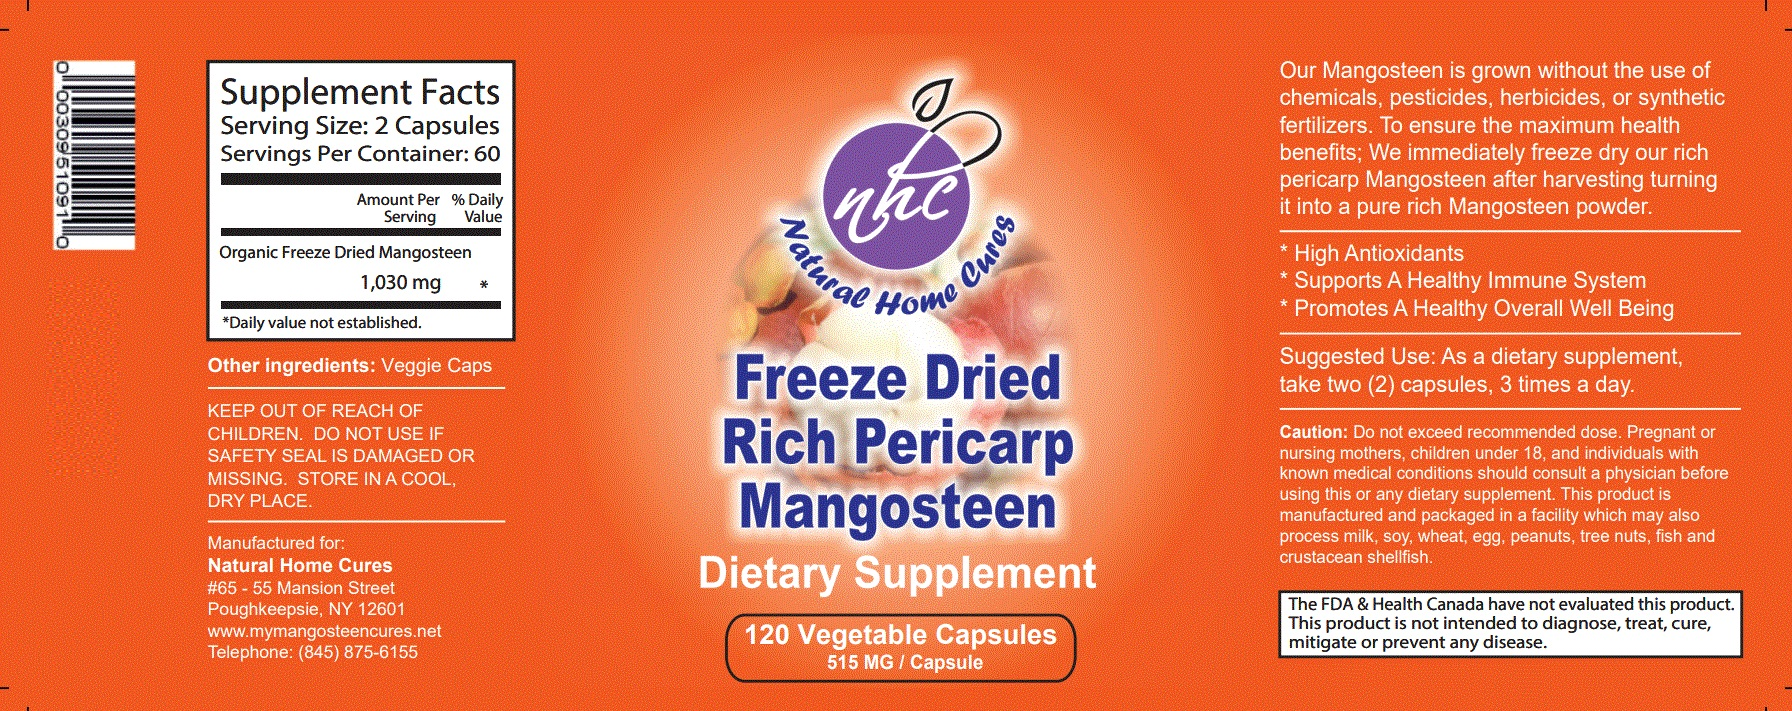 Mangosteen Product Label